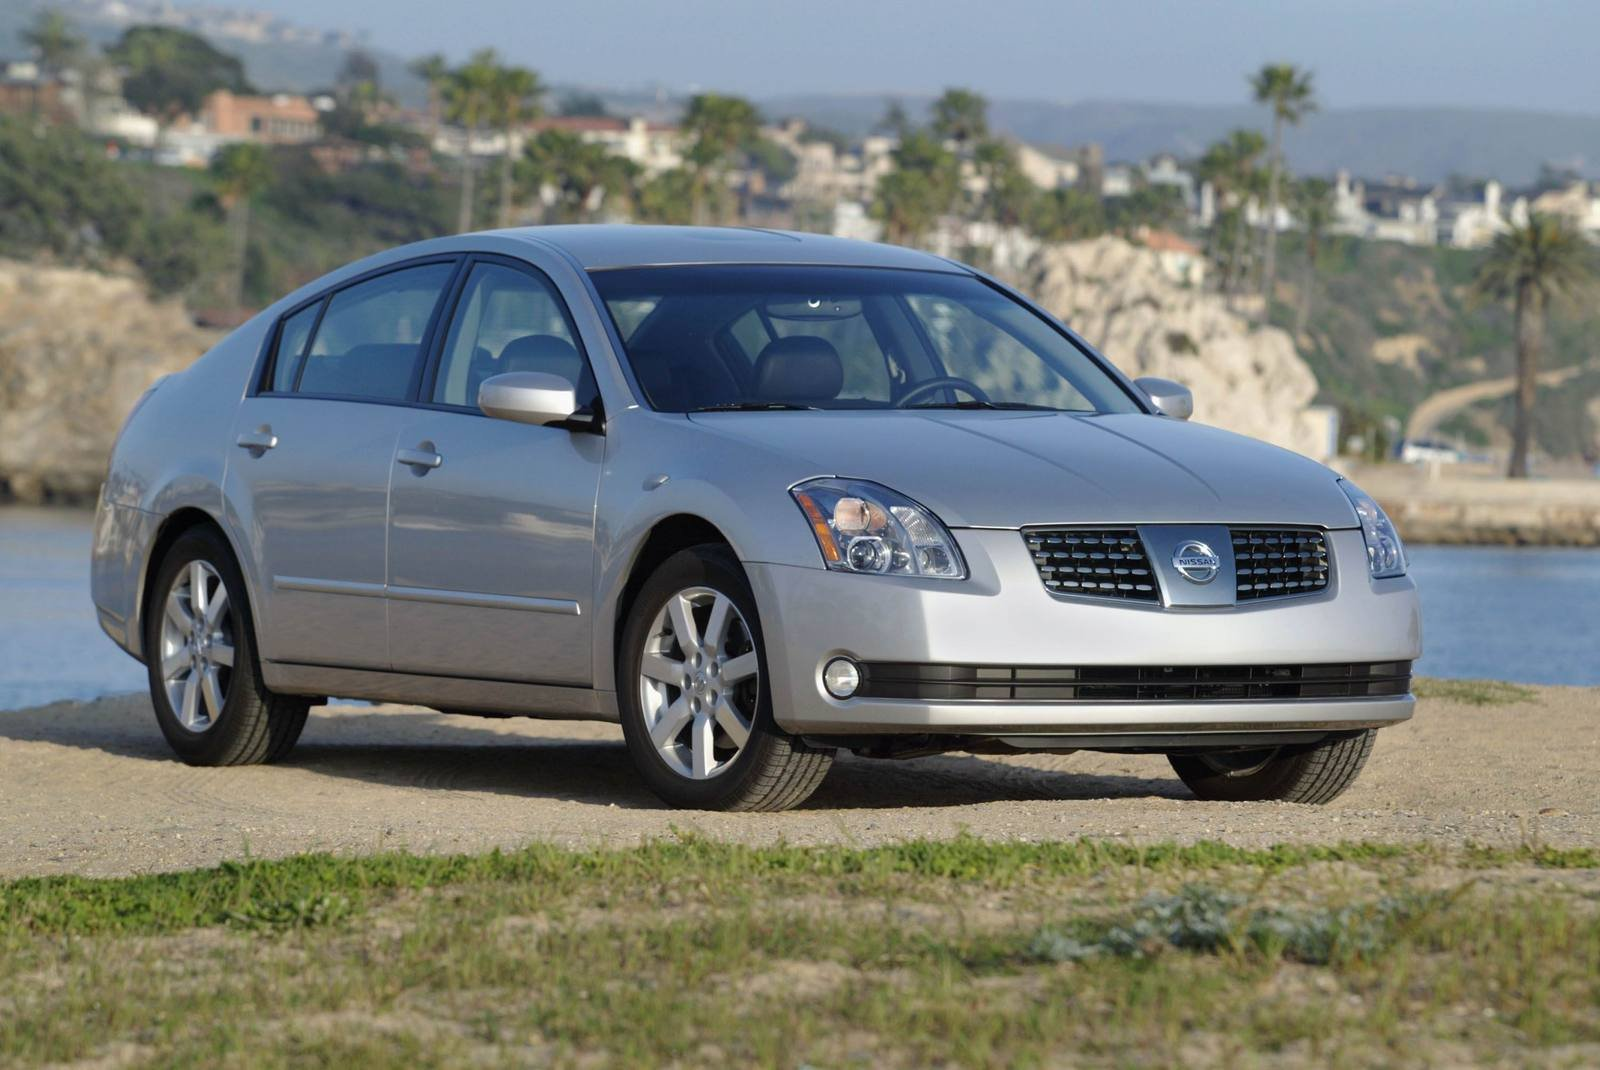 2006 nissan maxima se picture 41248 car review top speed. Black Bedroom Furniture Sets. Home Design Ideas